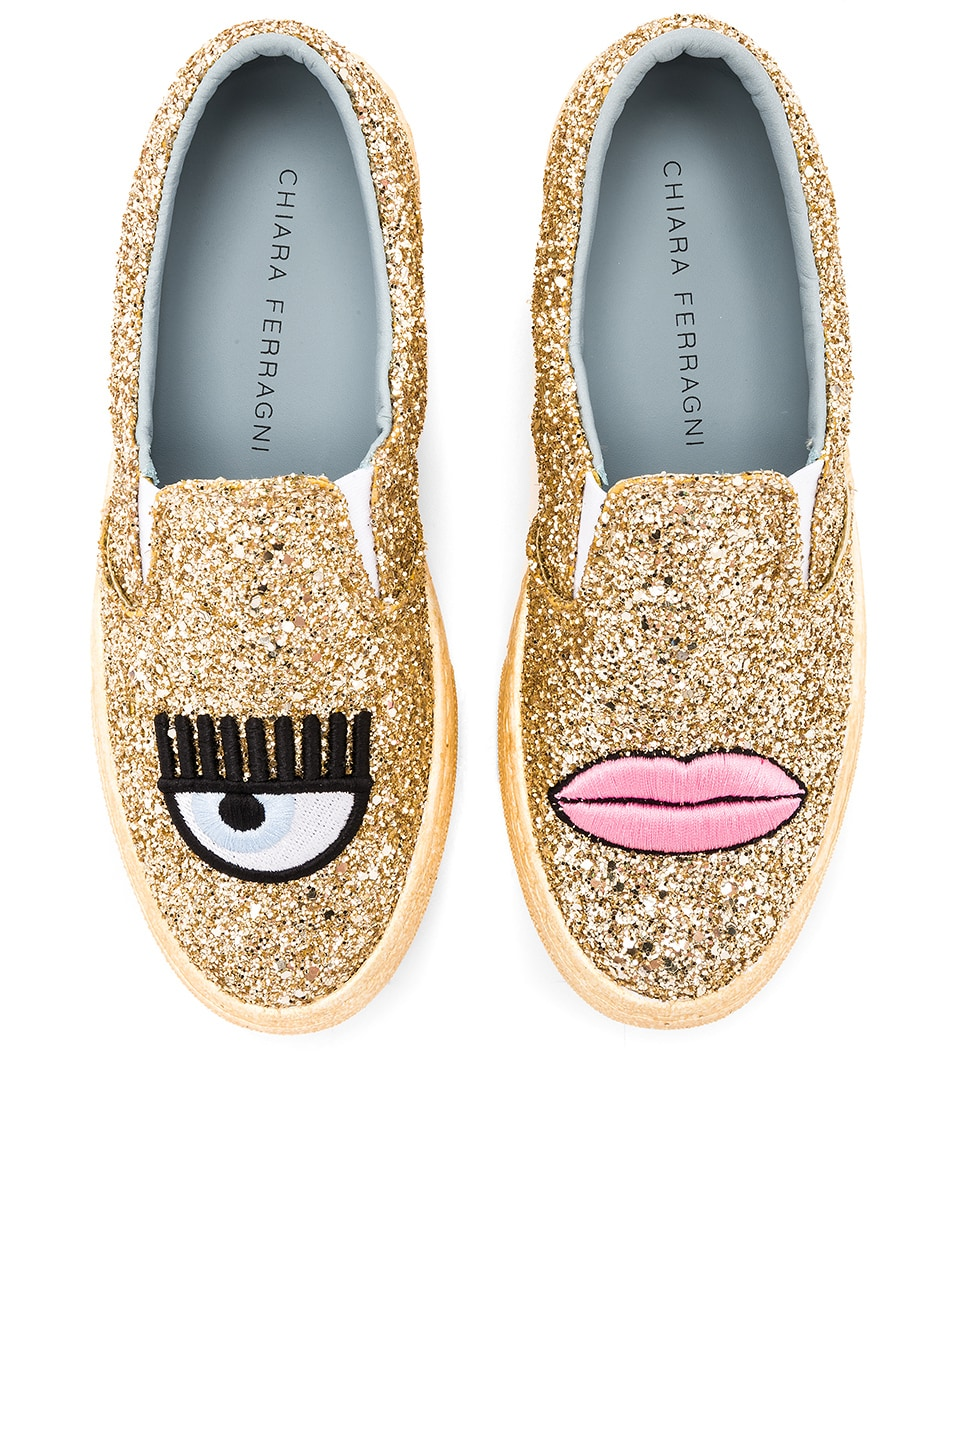 Logomania Slip On by Chiara Ferragni